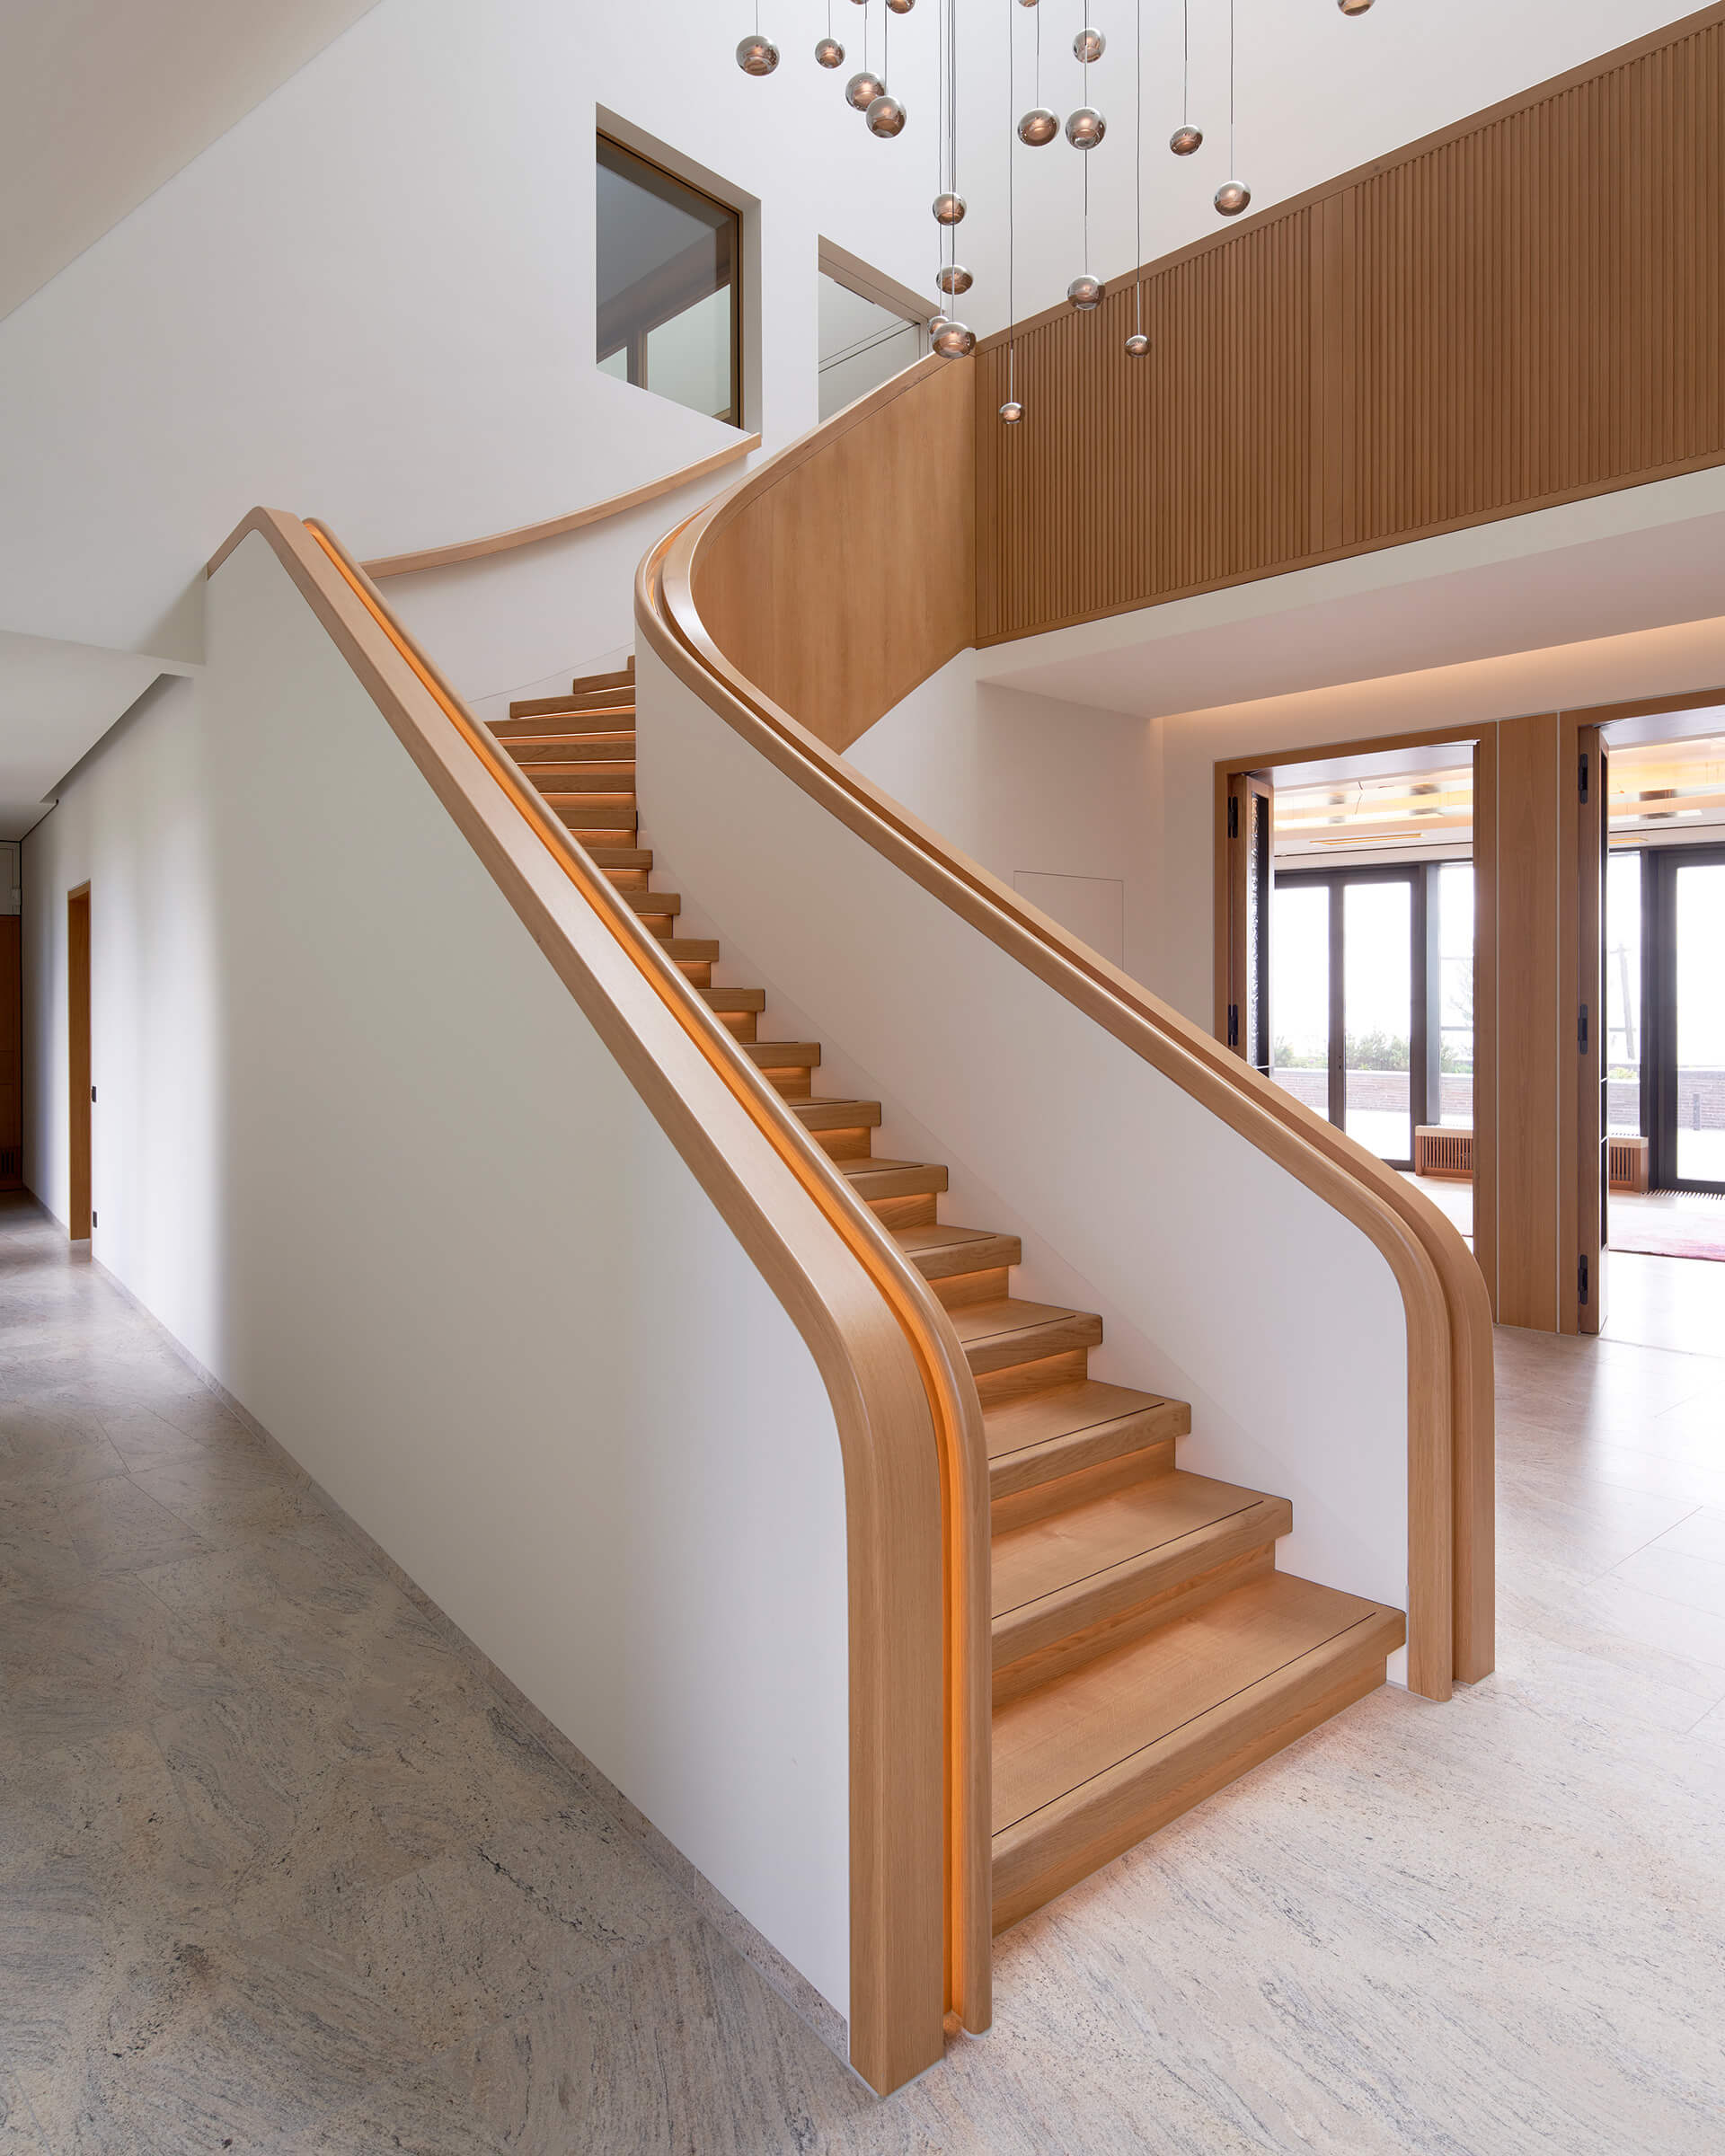 Internal staircase | House on a North Sea Island | Hubschmitz Arkitekten | STIRworld